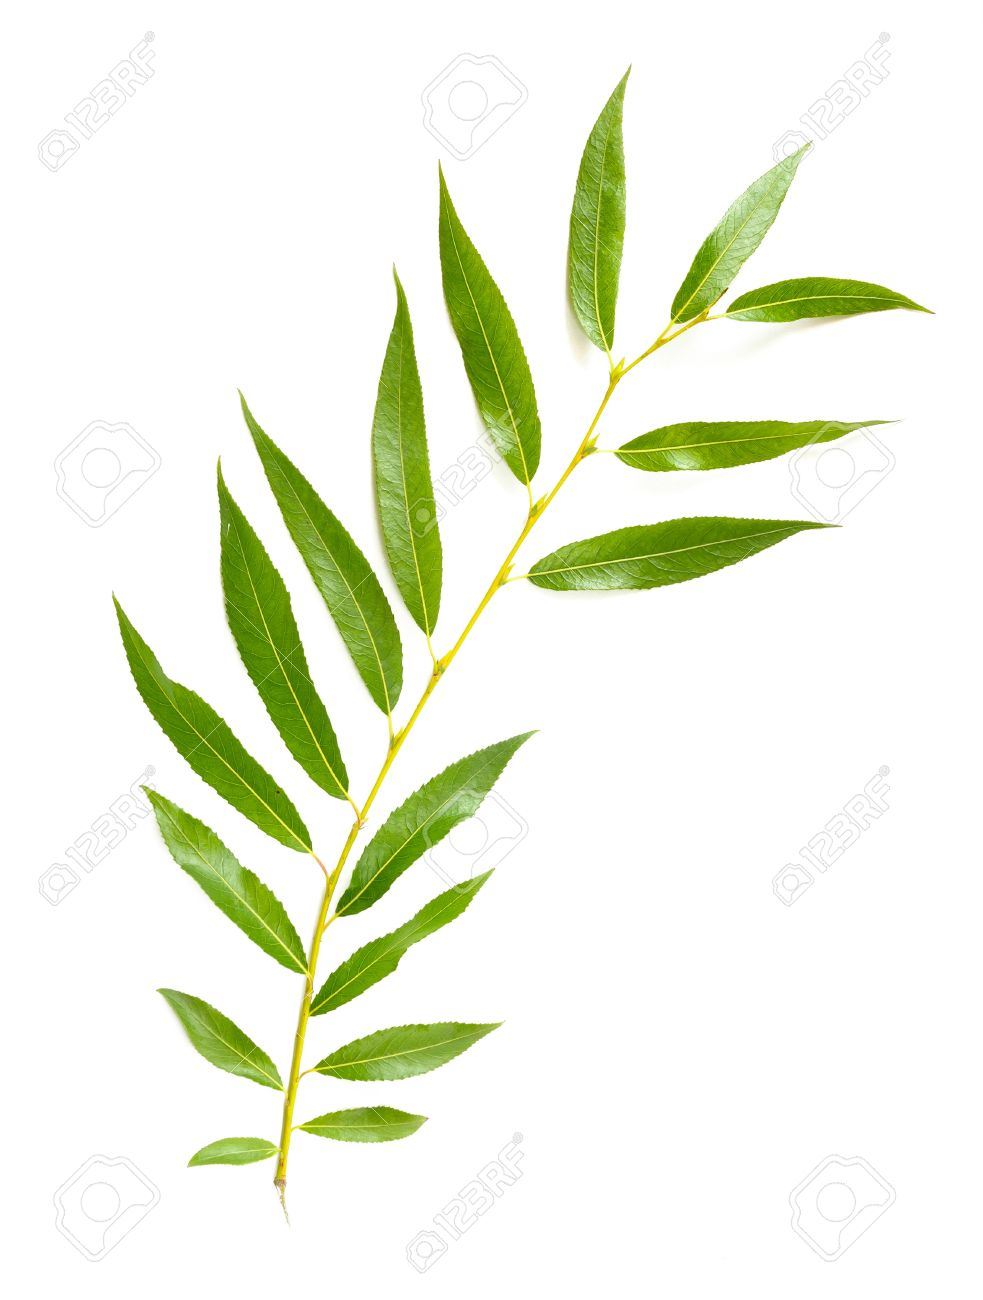 A Tender Green Weeping Willow Leaf On White Background Stock Photo.